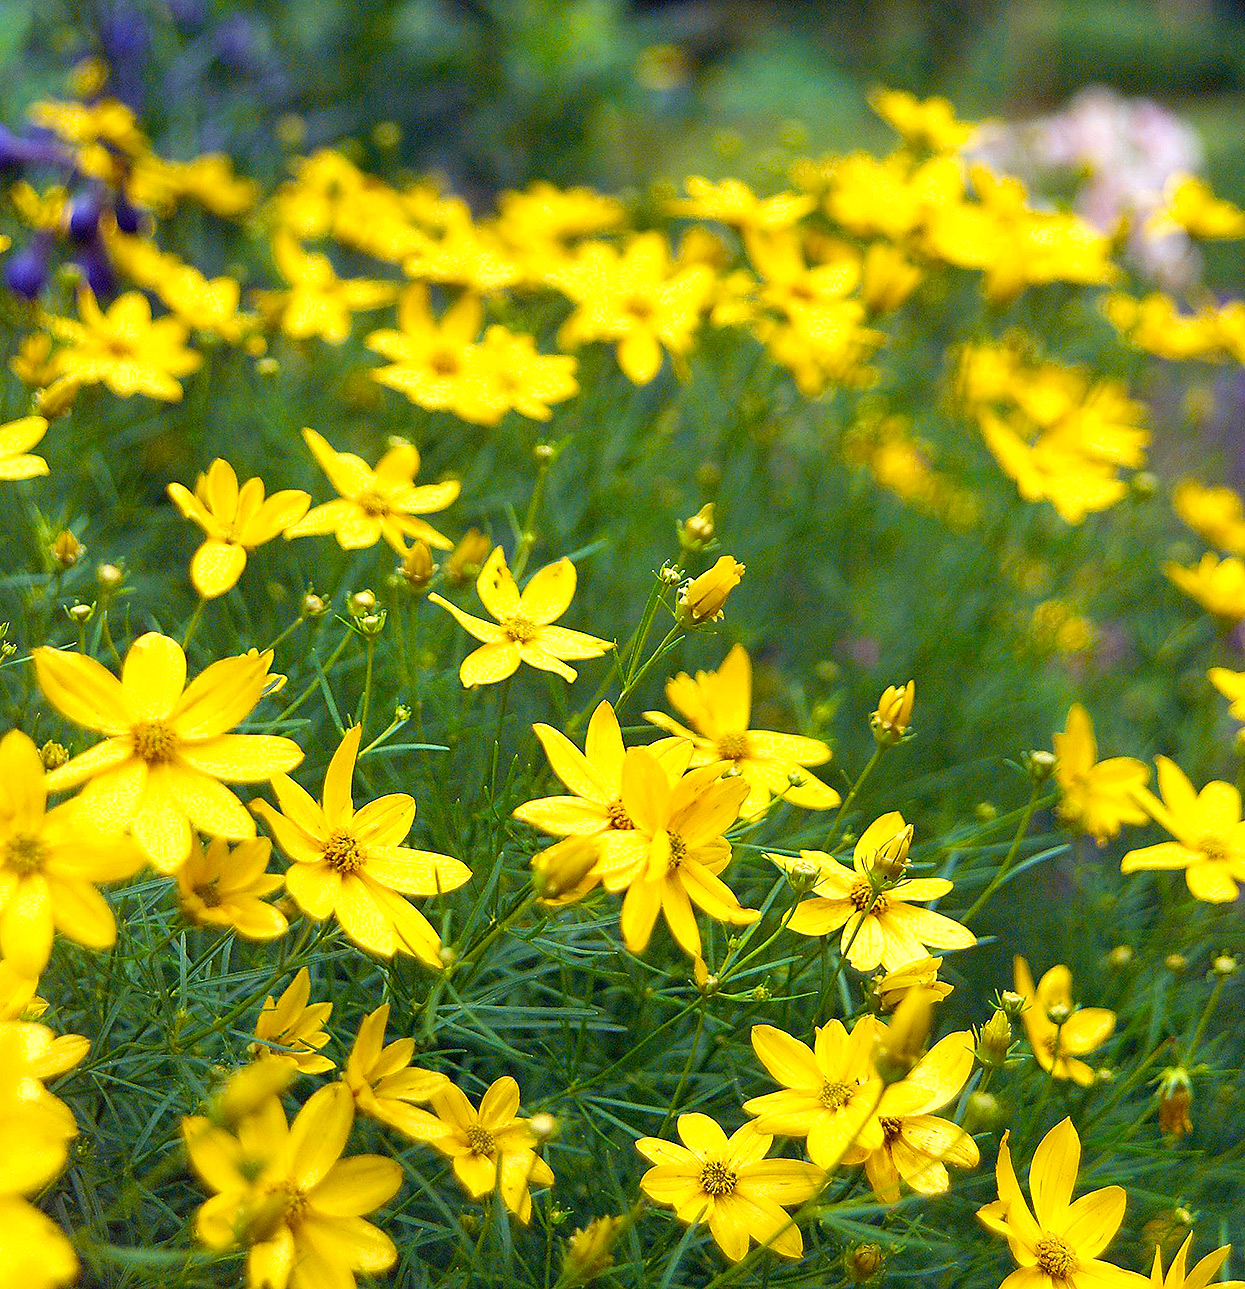 small yellow daisy-like threadleaf coreopsis perennial flowers